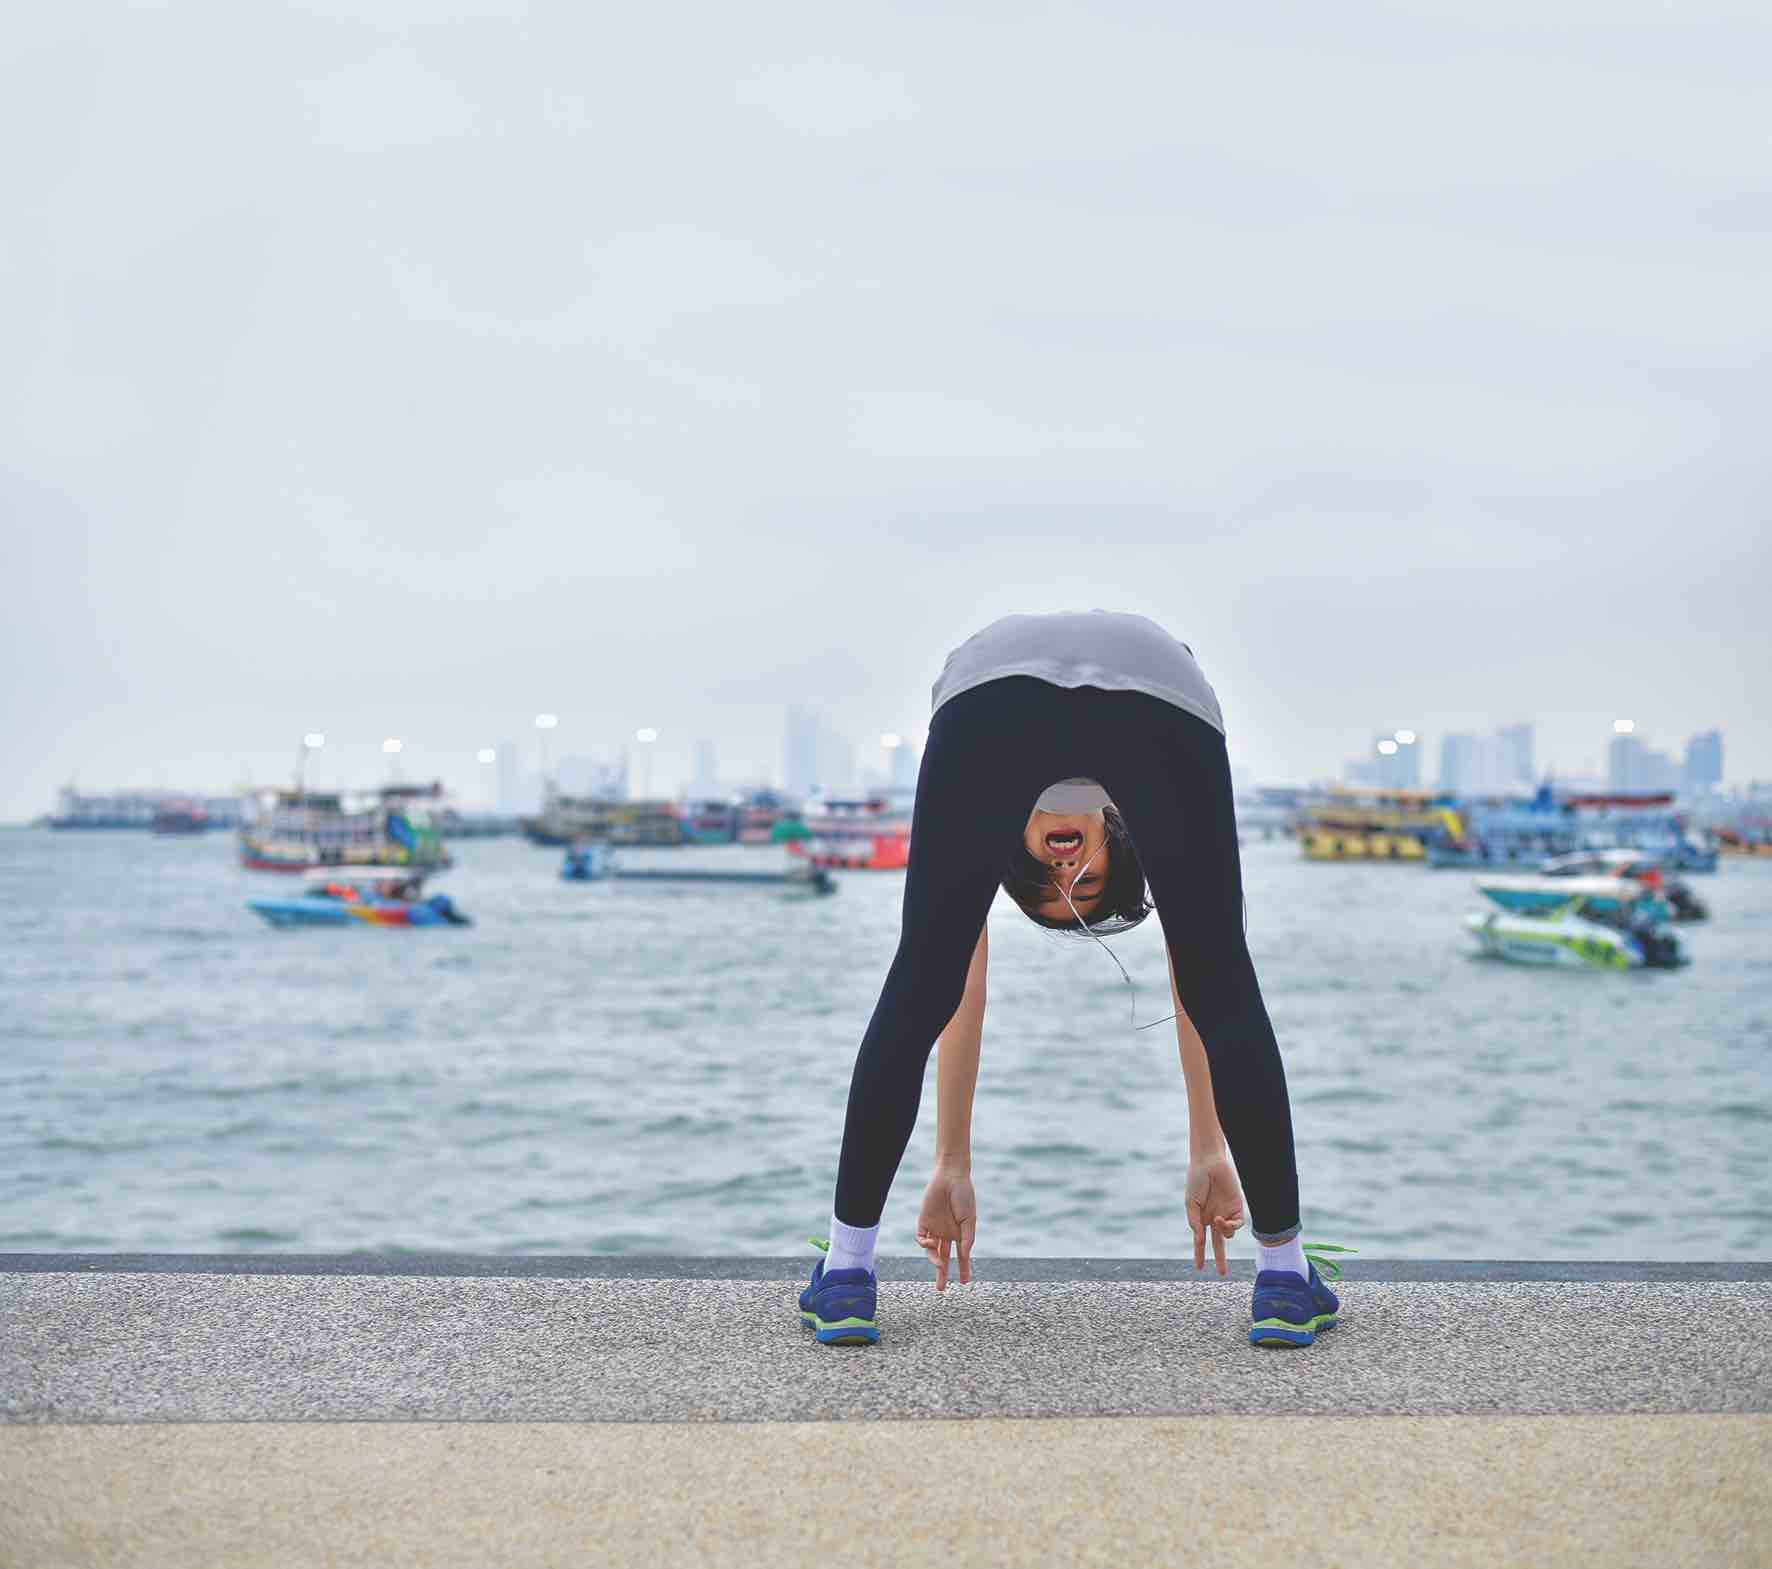 Motivation matters with The Happiness Personal Trainer